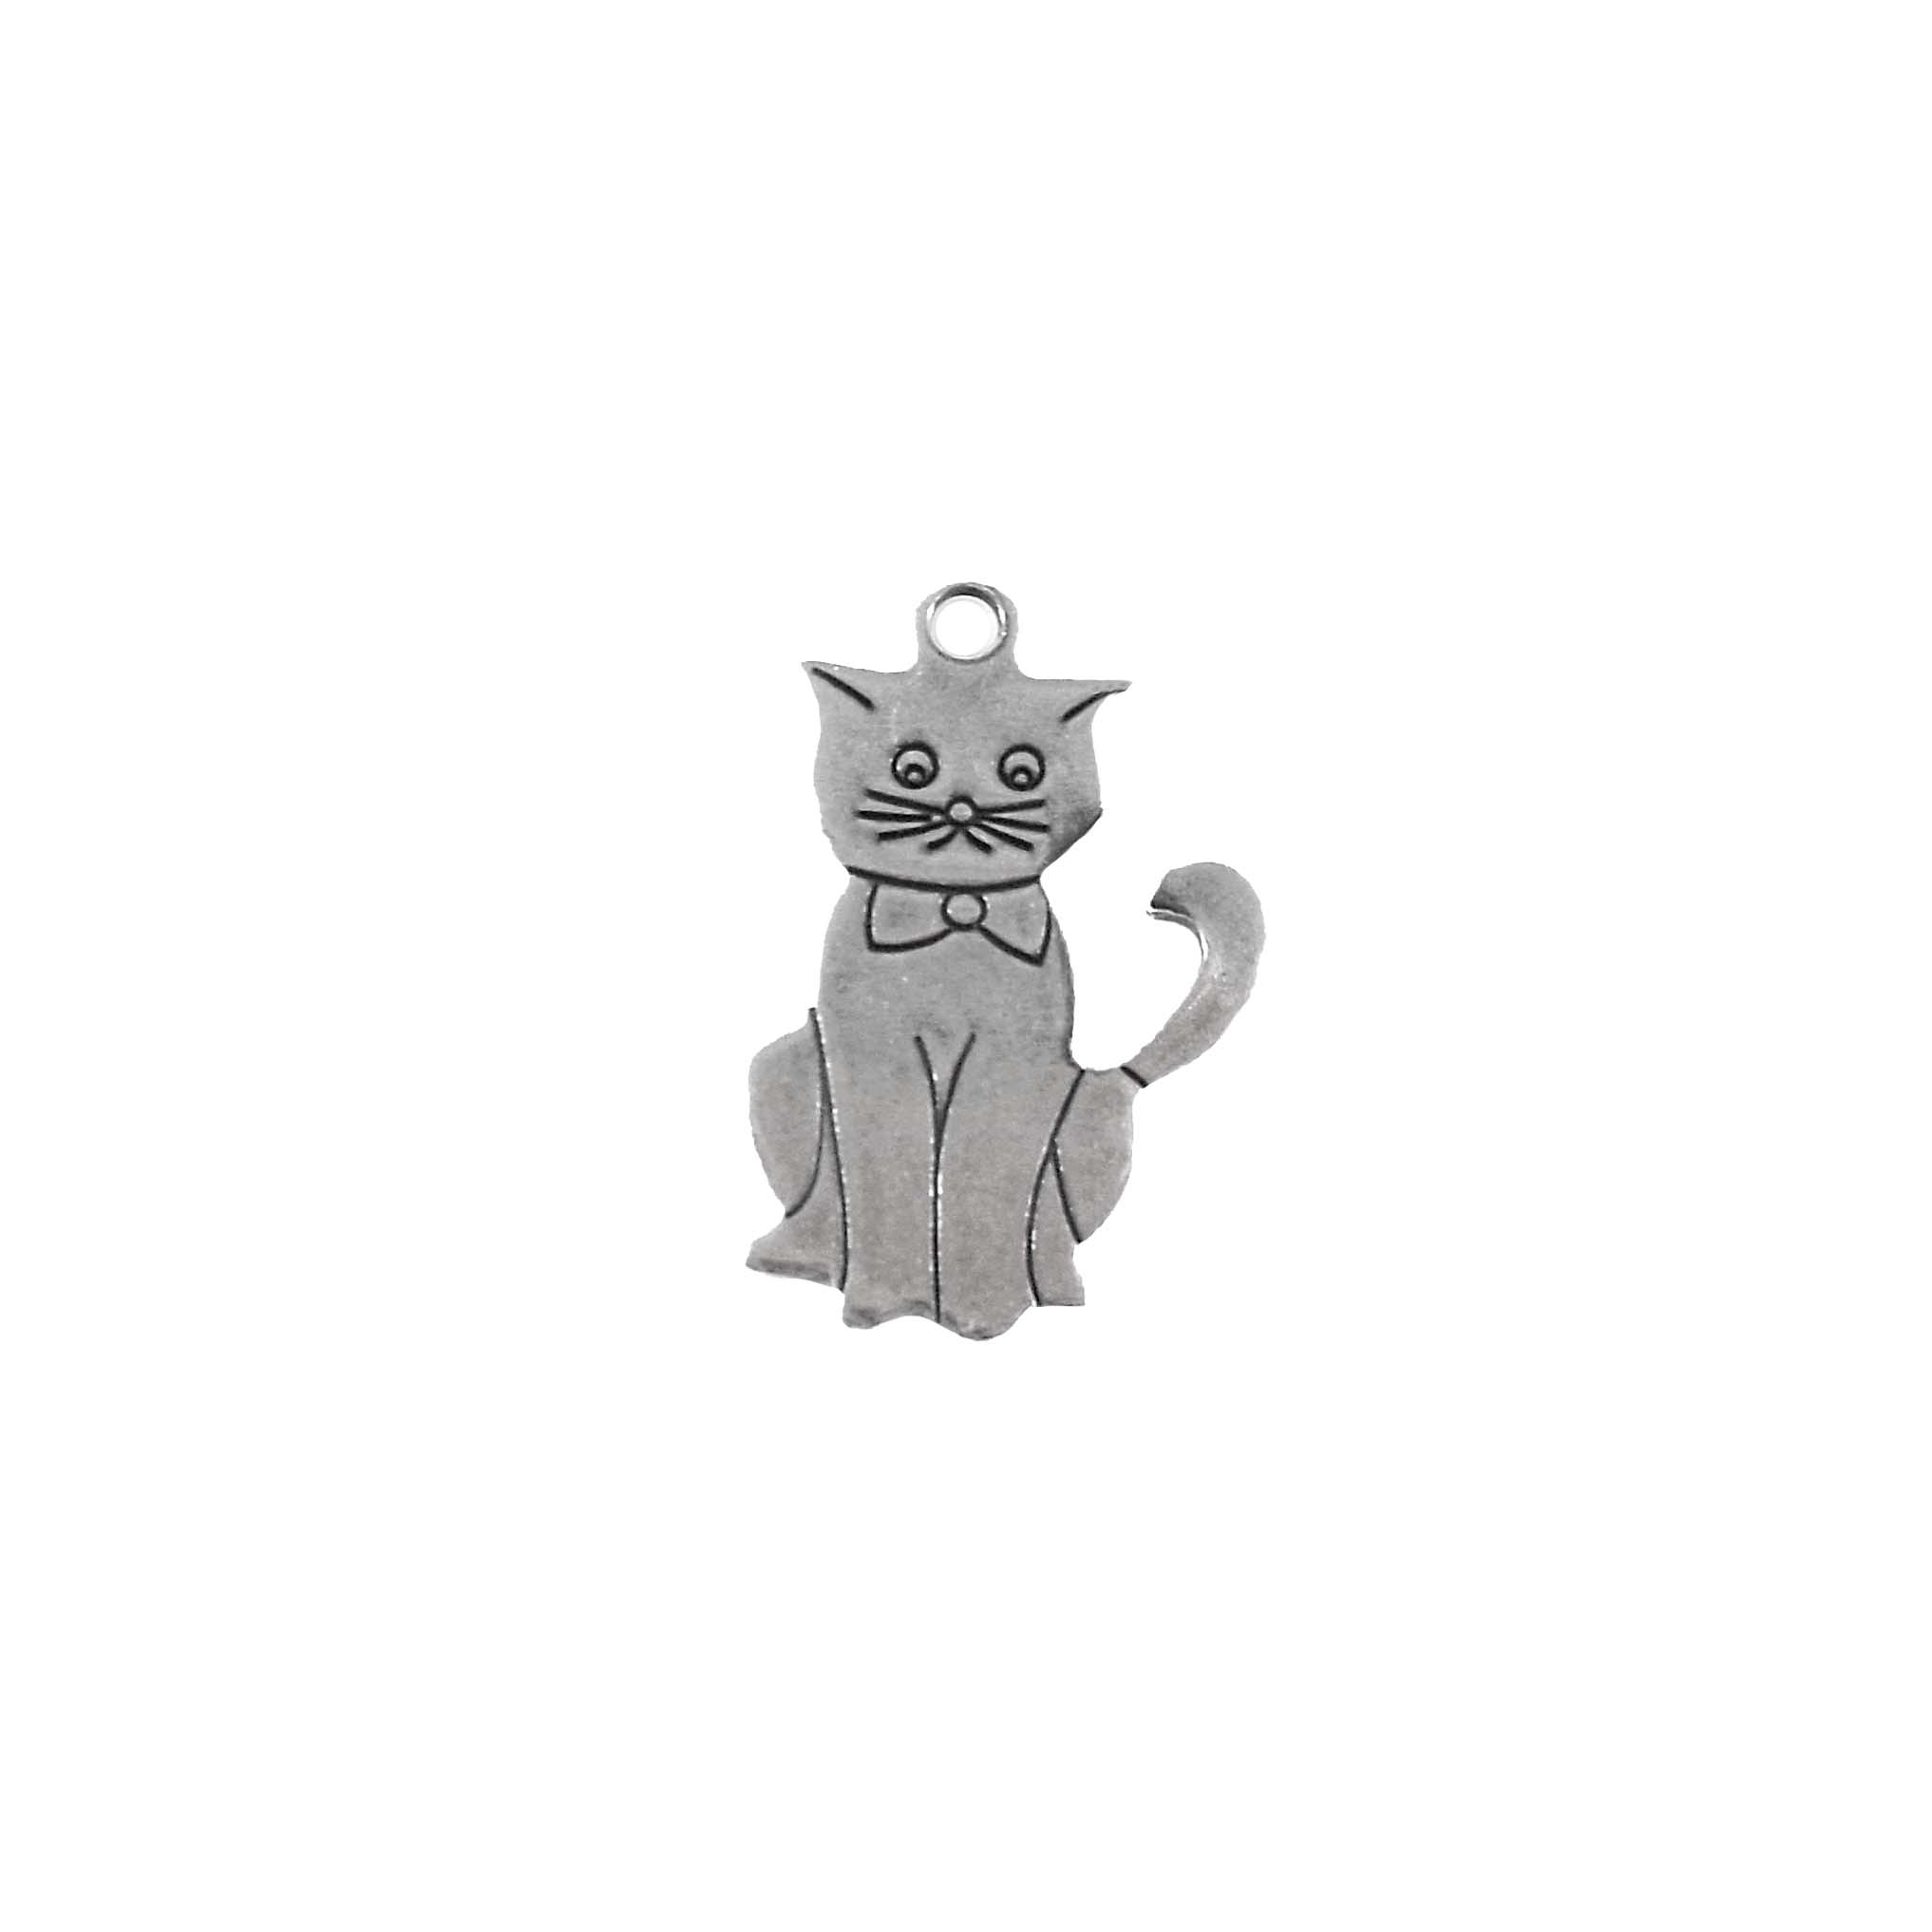 kitty charms, kitty with bow tie, jewelry making, silver, 06153, cat charm, cat, silver kitten, kitten, charms, pets, animals, silverware silverplate